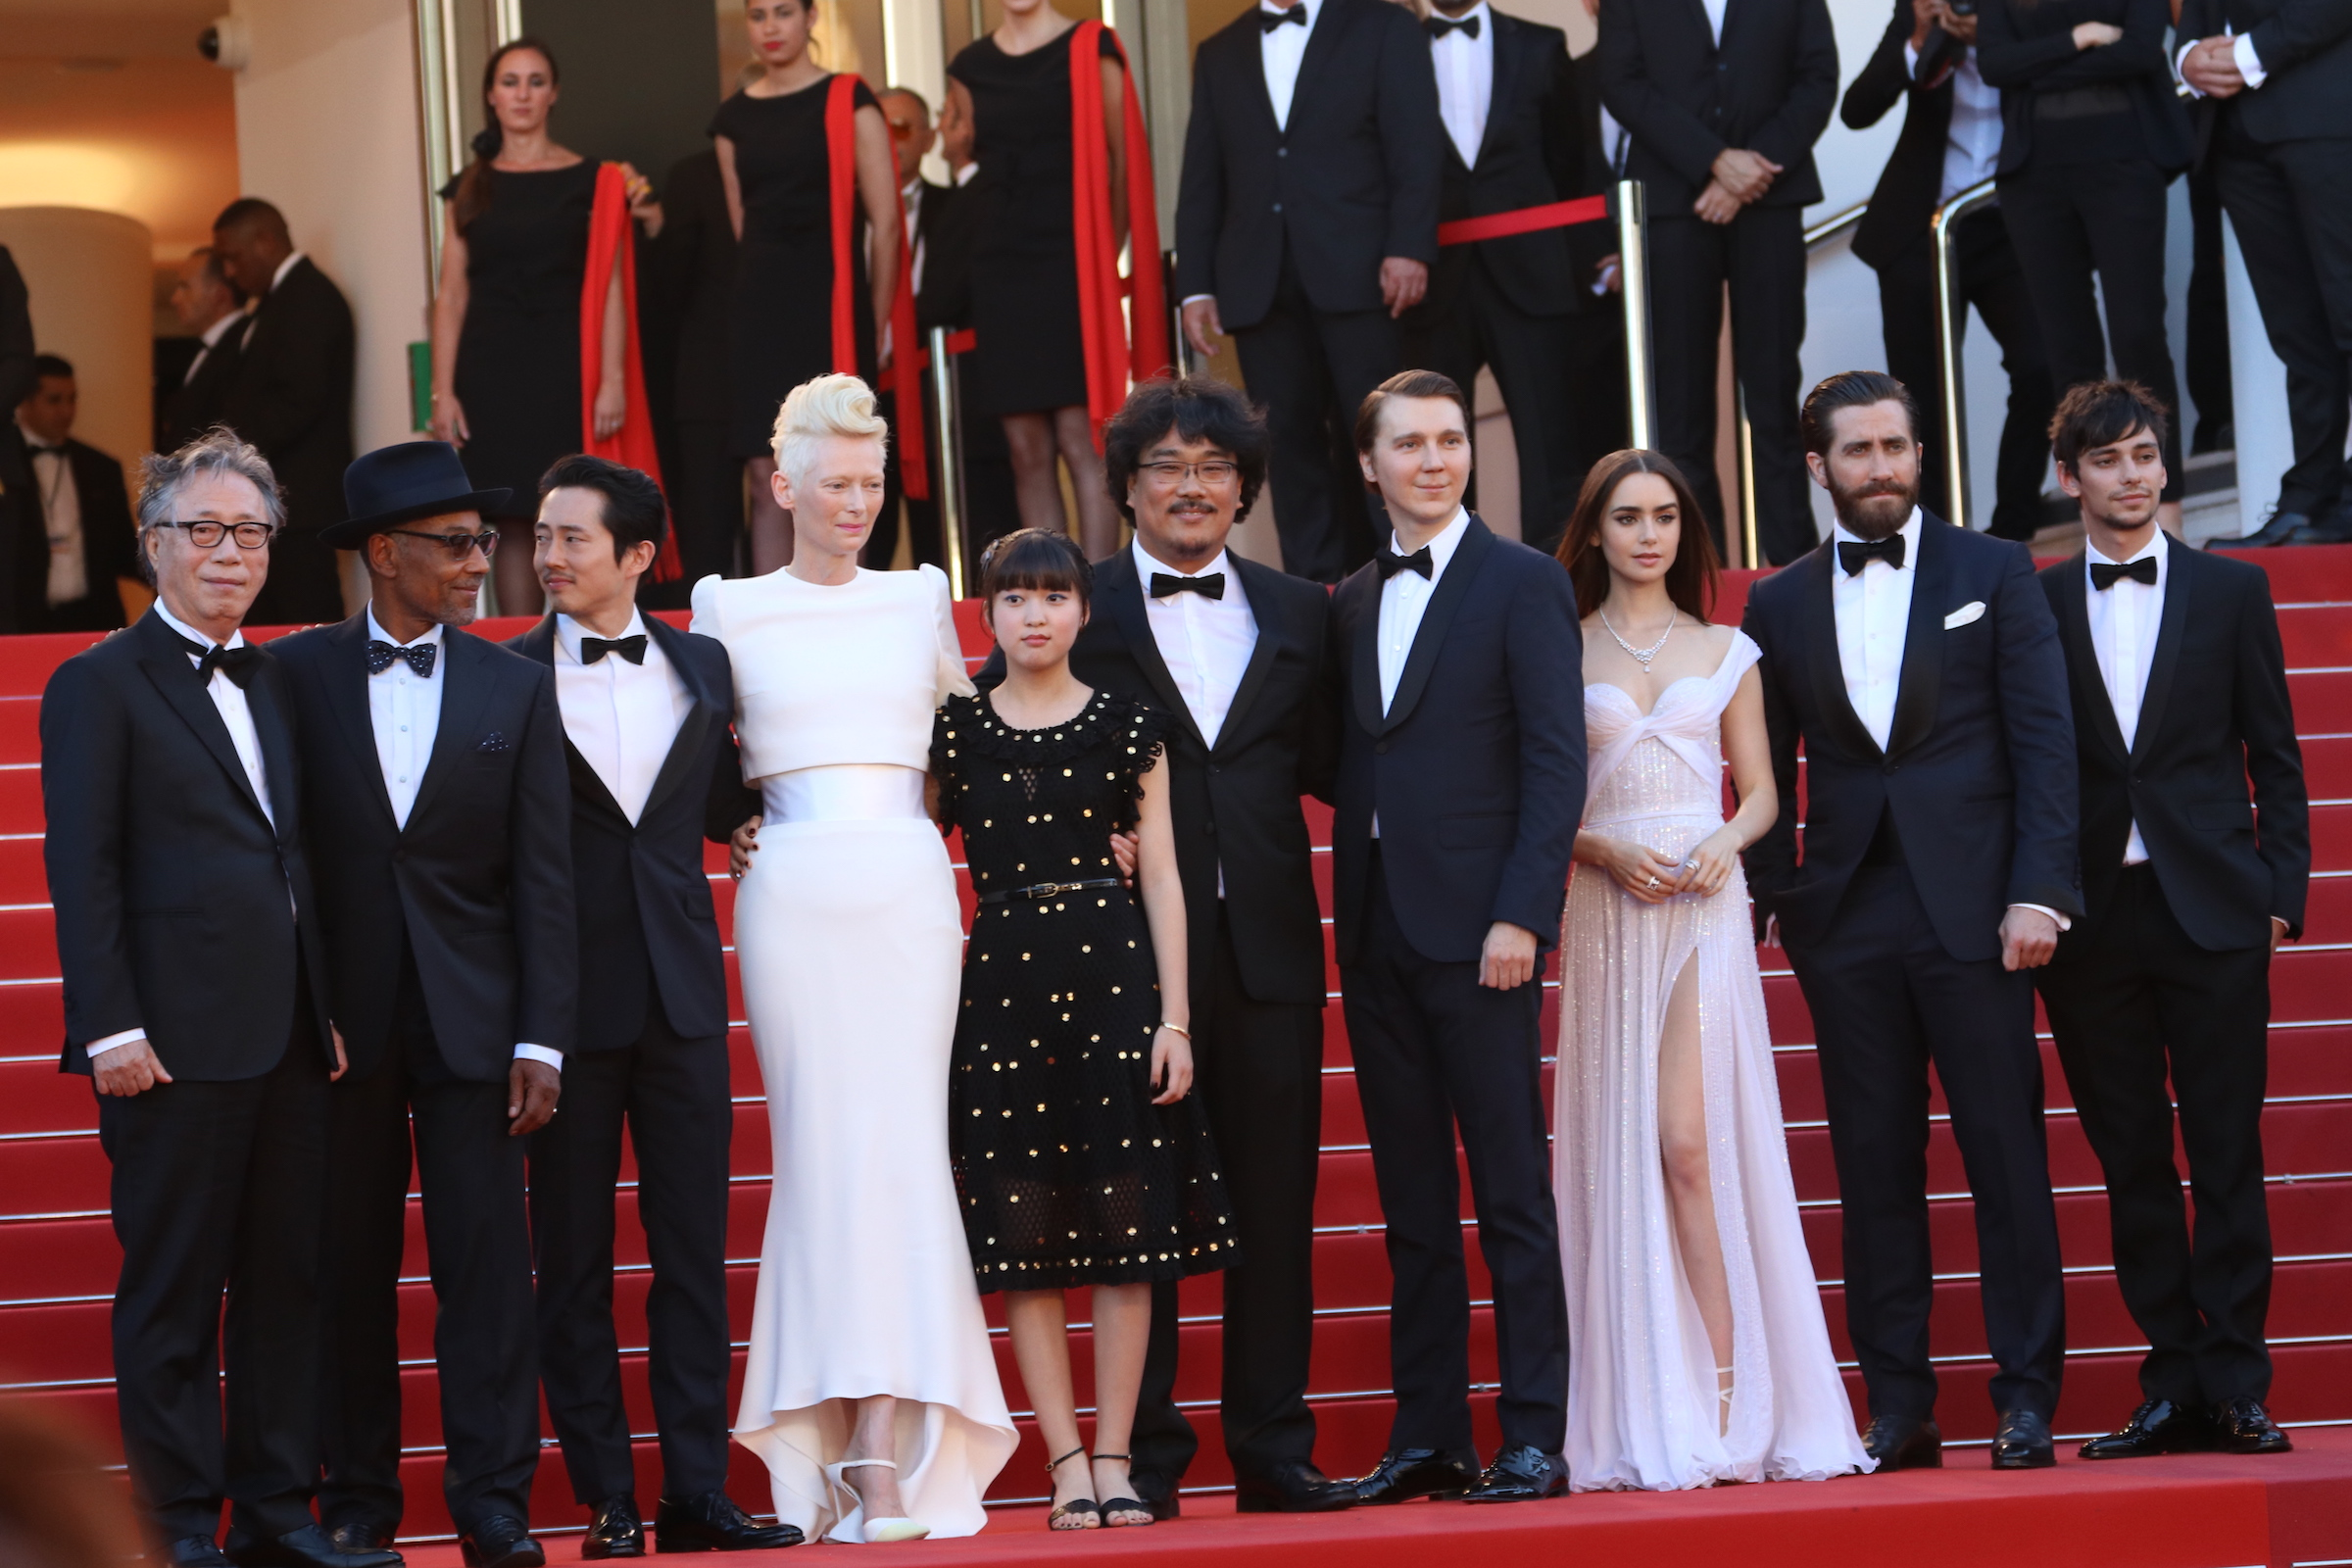 Cannes 2017: Tilda Swinton, Lily Collins, Jake Gyllenhaal e il cast sul red carpet di Okja